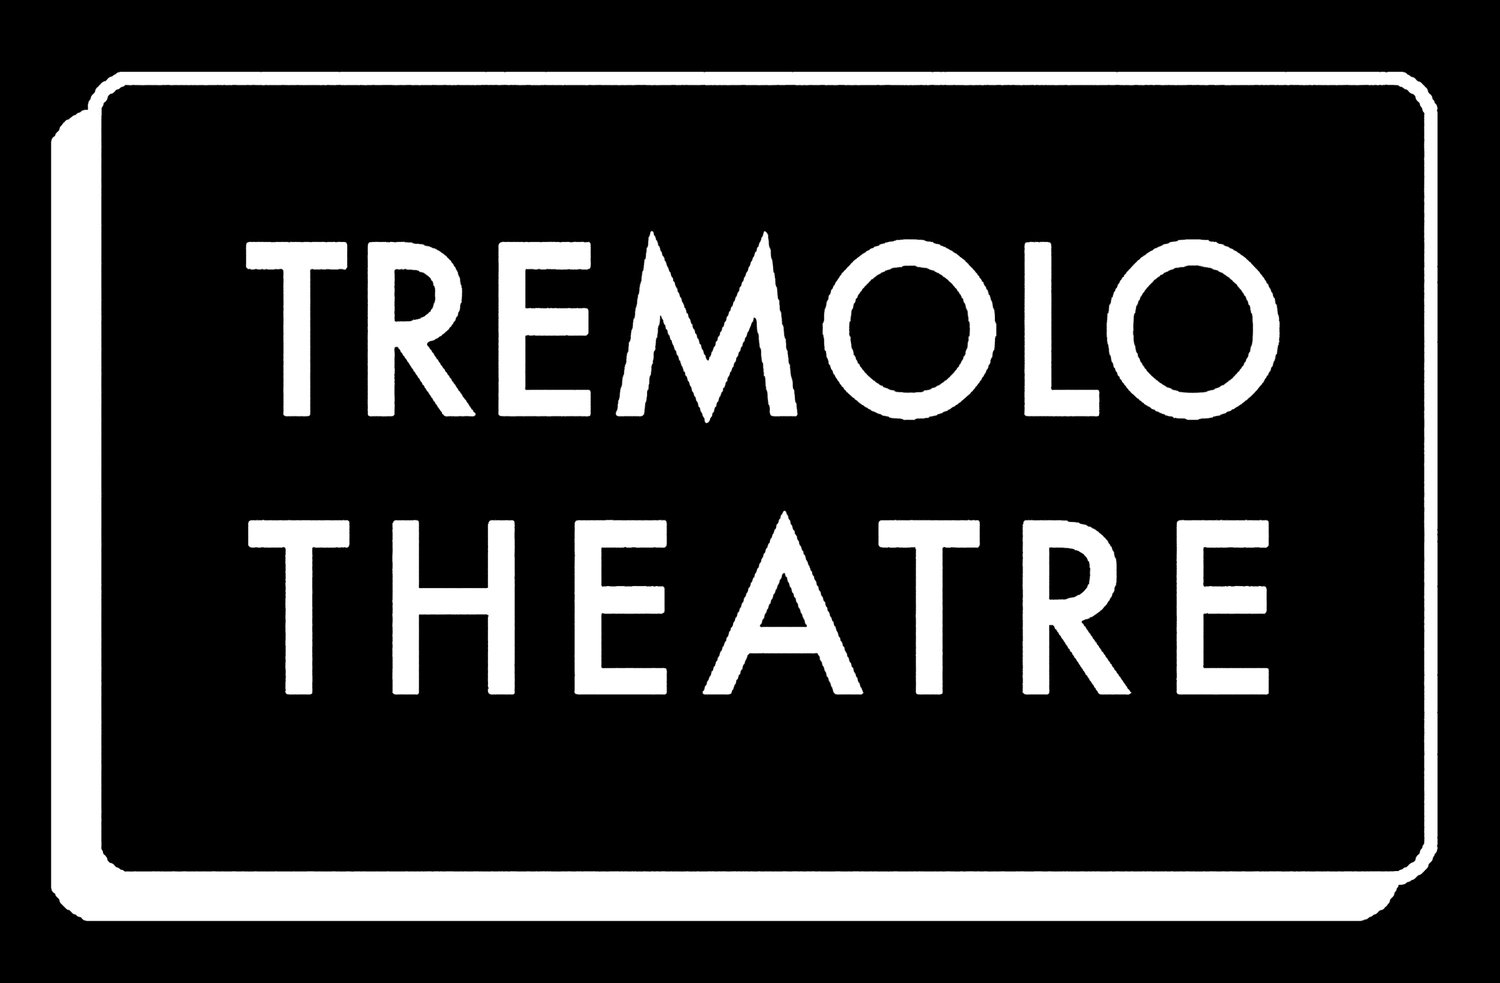 Tremolo Theatre